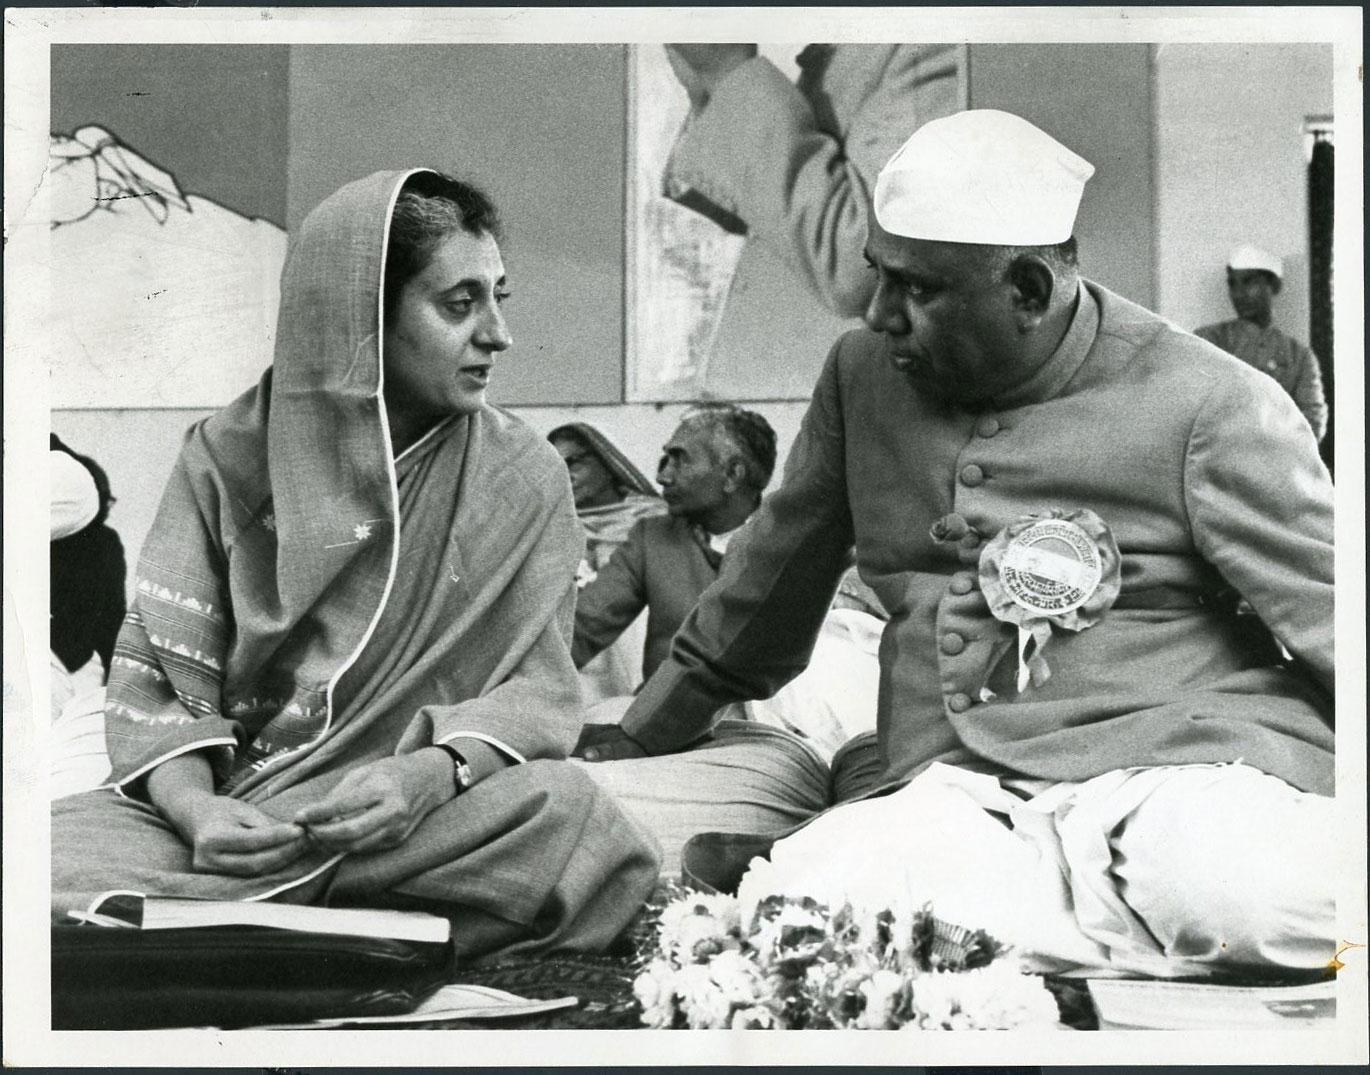 Prime Minister Indira Gandhi Chats with Defence Minister Y. B. Chavan in Jaipur During a National Meeting of the Governing Congress Party - 1966